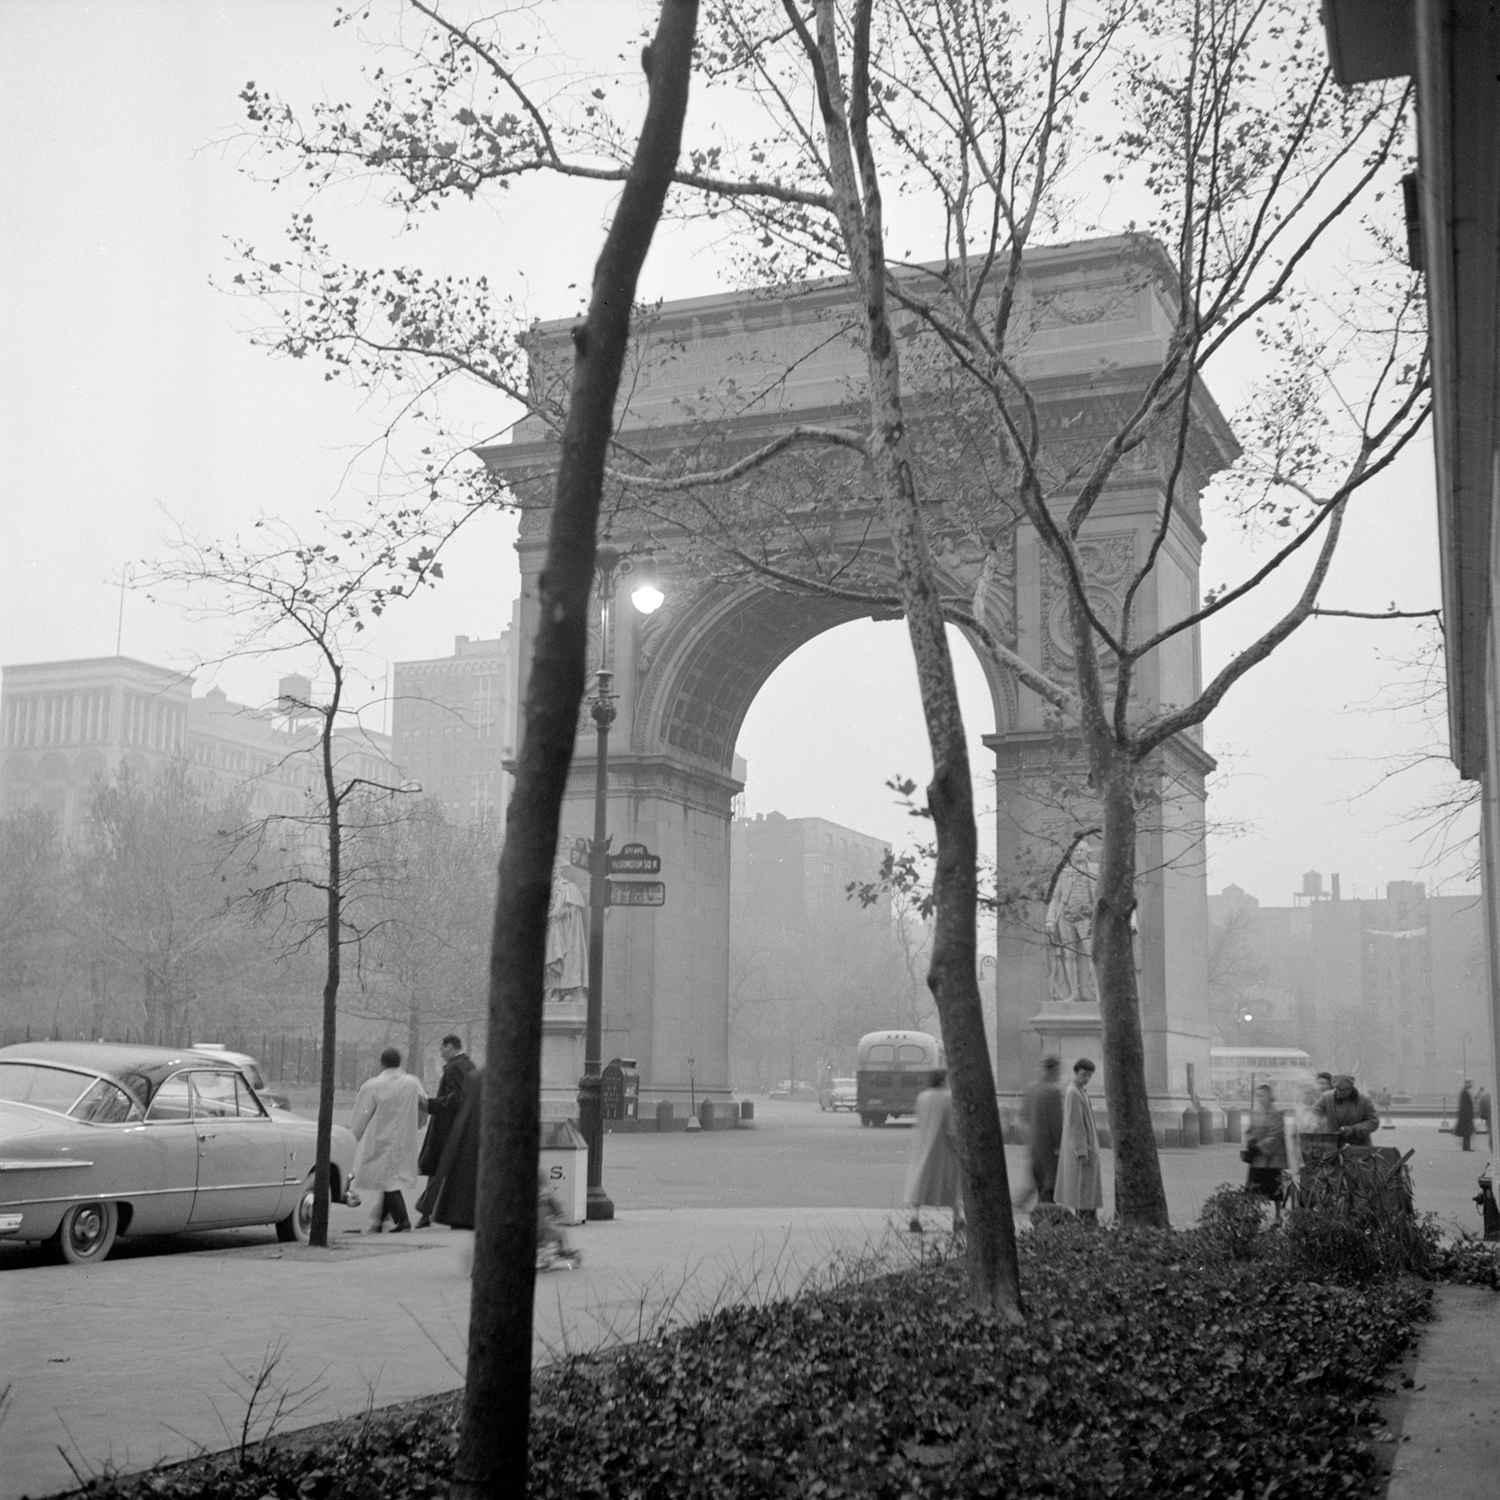 B&W Photographs of Mid Century NYC